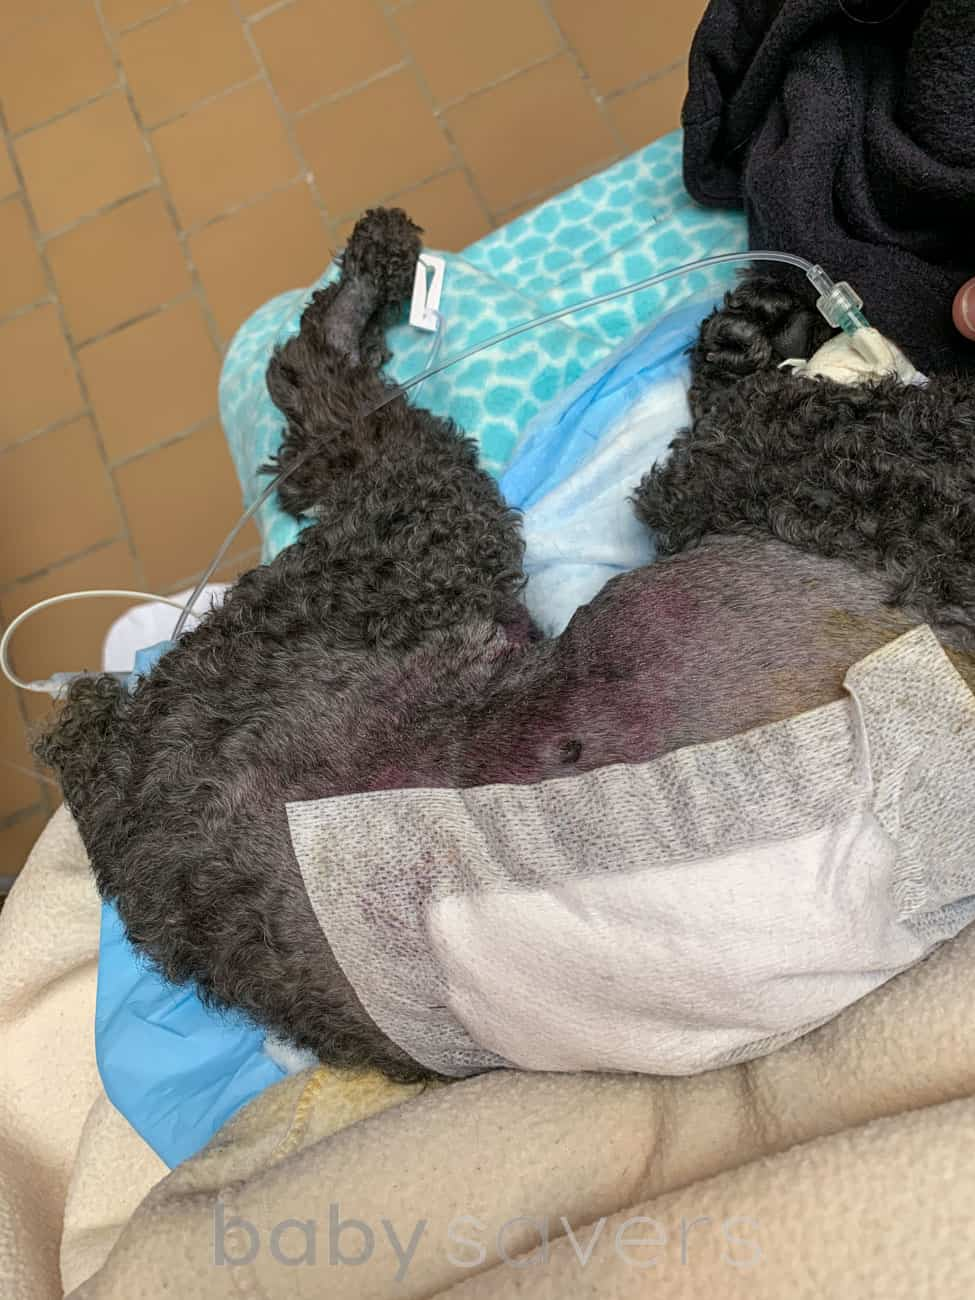 injured dog with bandage and fentanyl drip